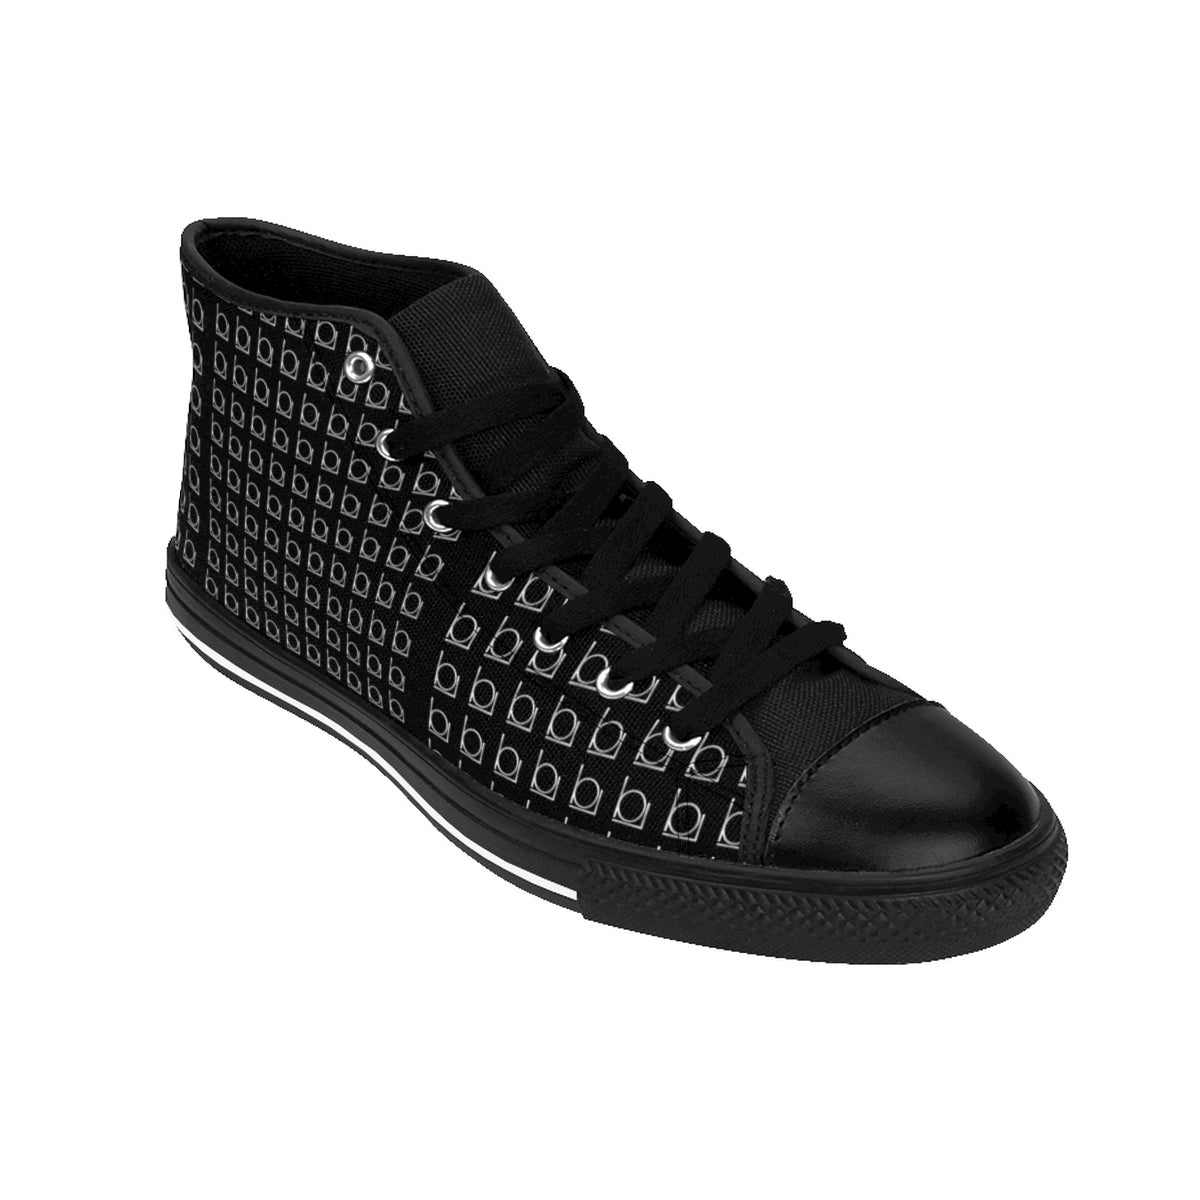 "Beyond Lavish  ""BL11"" Men's High-top Sneakers (PRE-ORDER)"